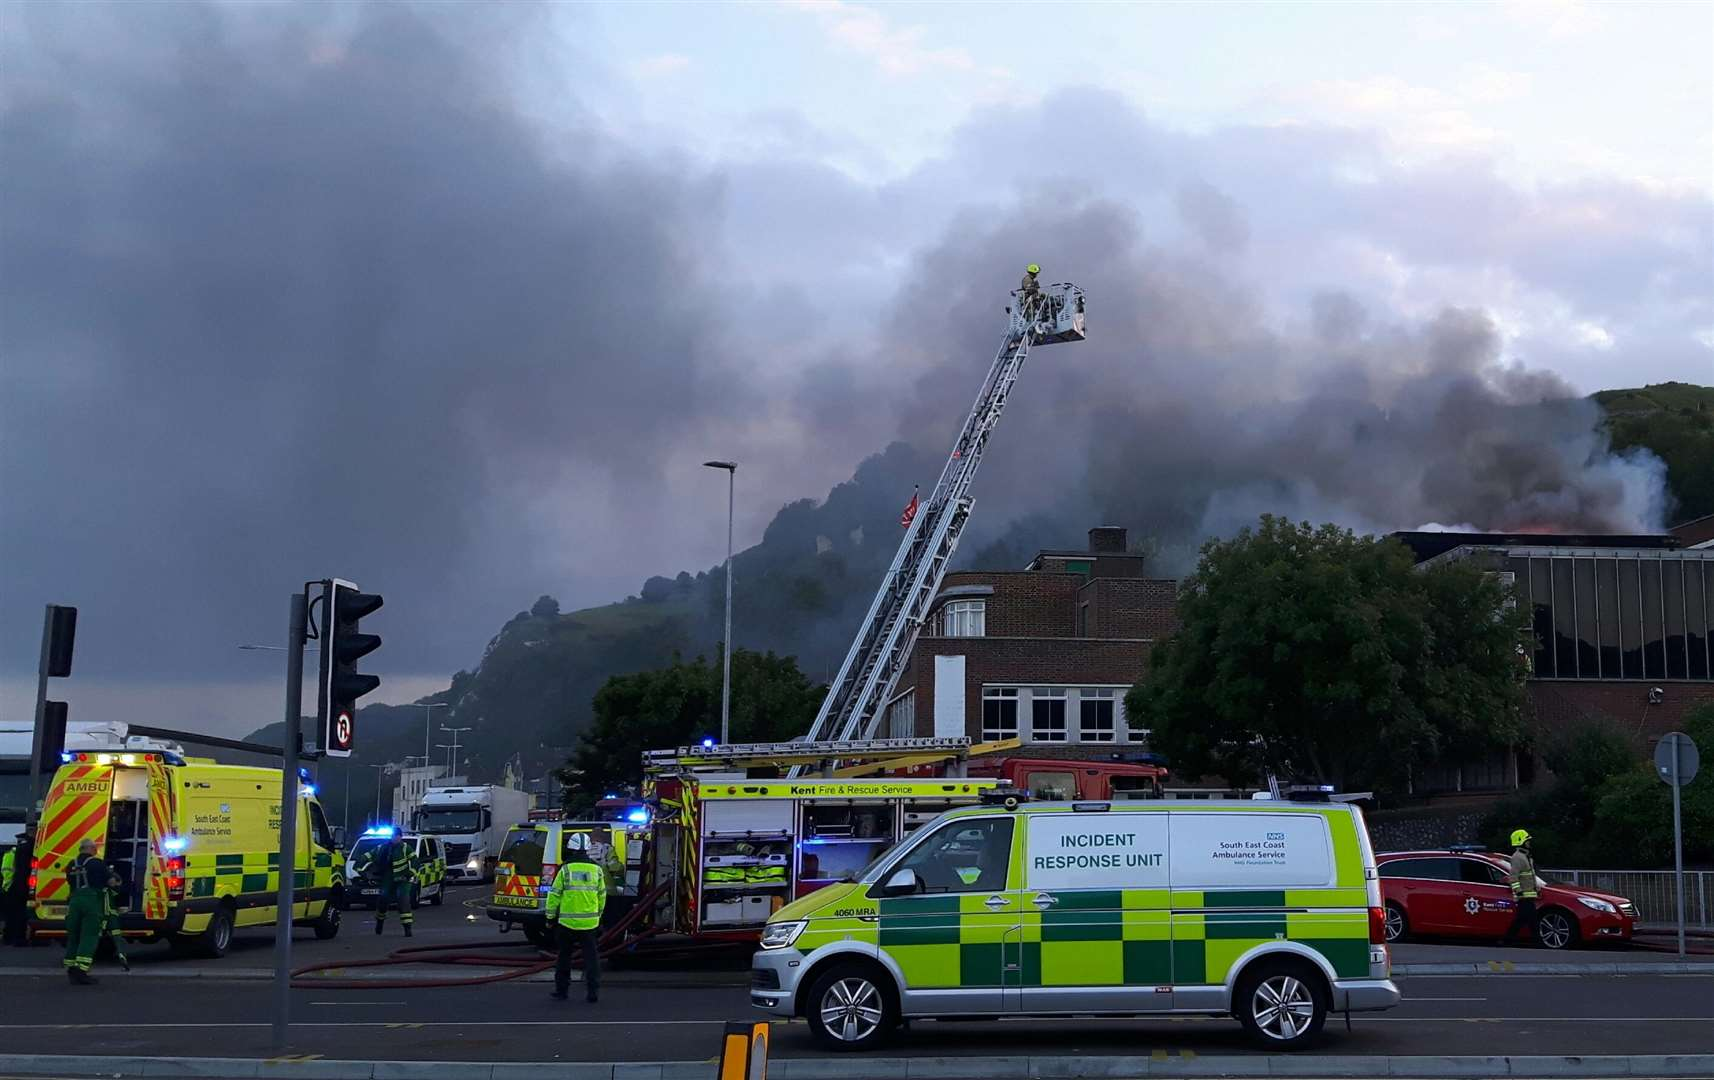 Efforts continued to put out the nightclub building fire. Picture: Sam Lennon